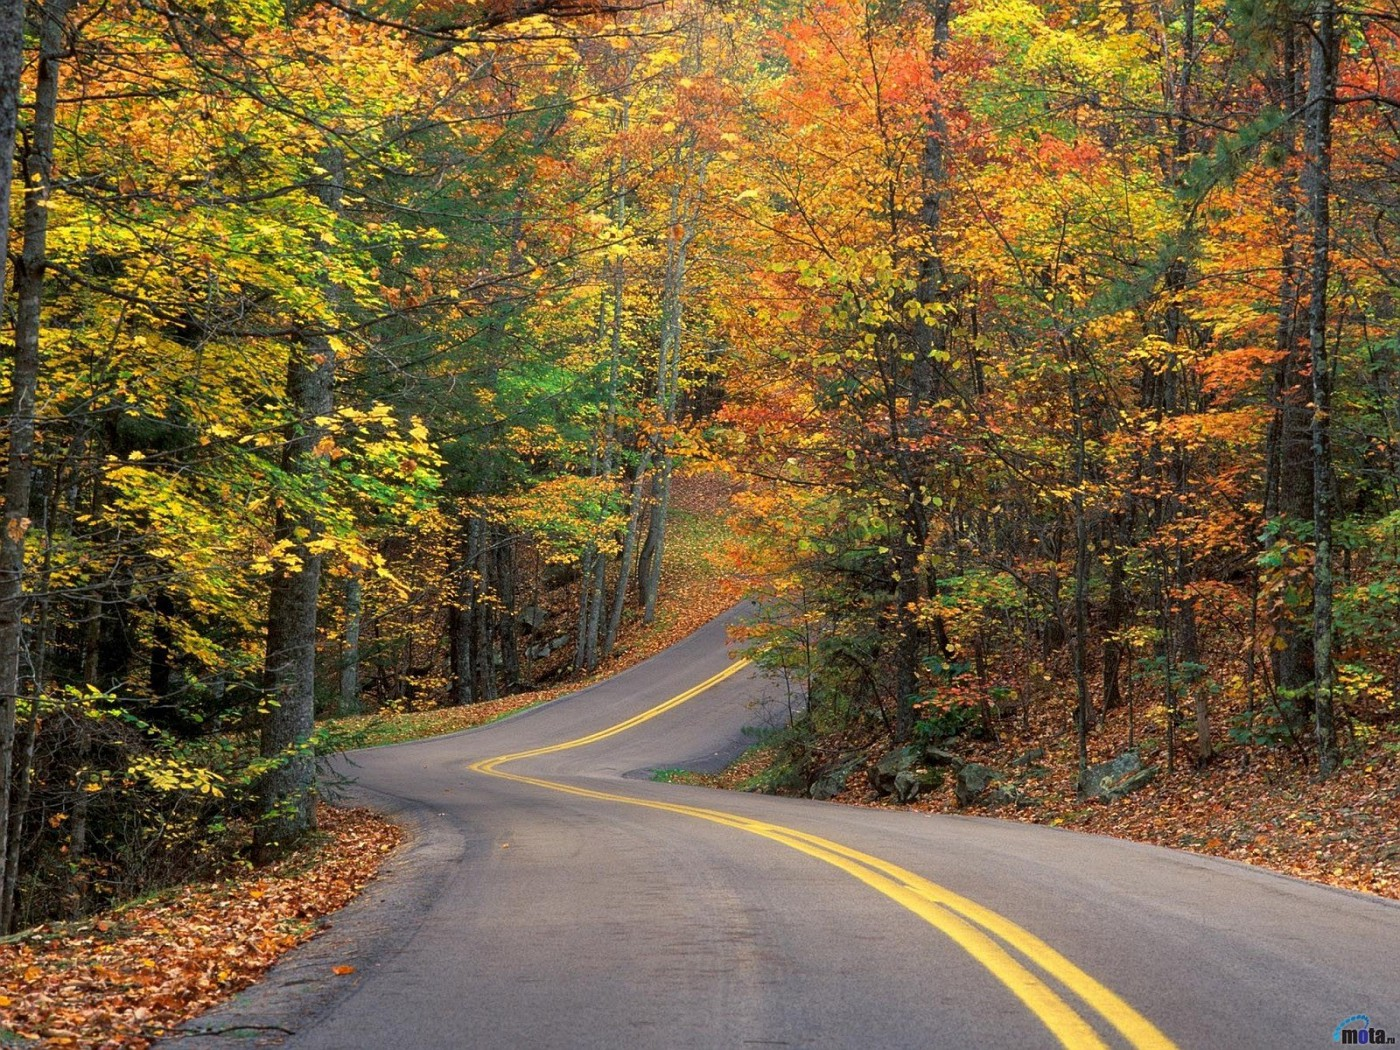 y_Autumn_Road_Forest_2560x1920-vi.jpg